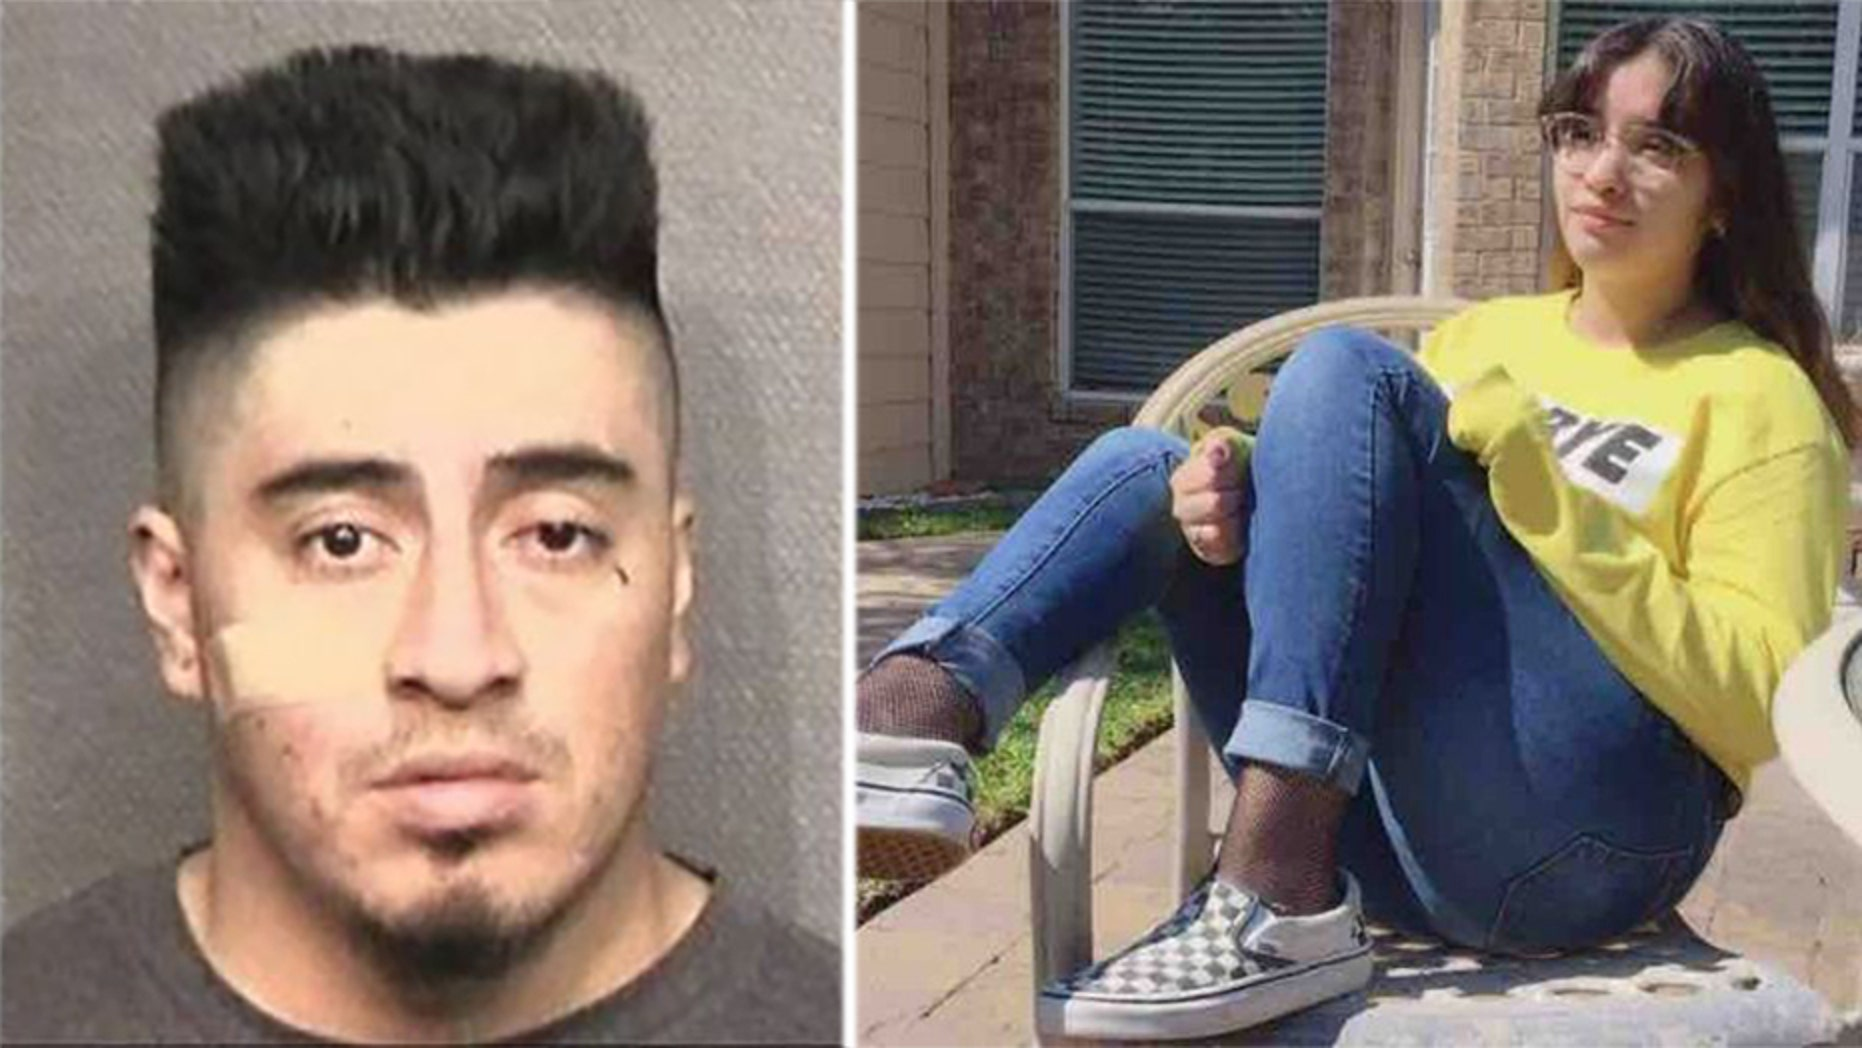 Britney Baez was killed in a car crash on May 27. Edy Lopez-Hernandez faces charges including murder.